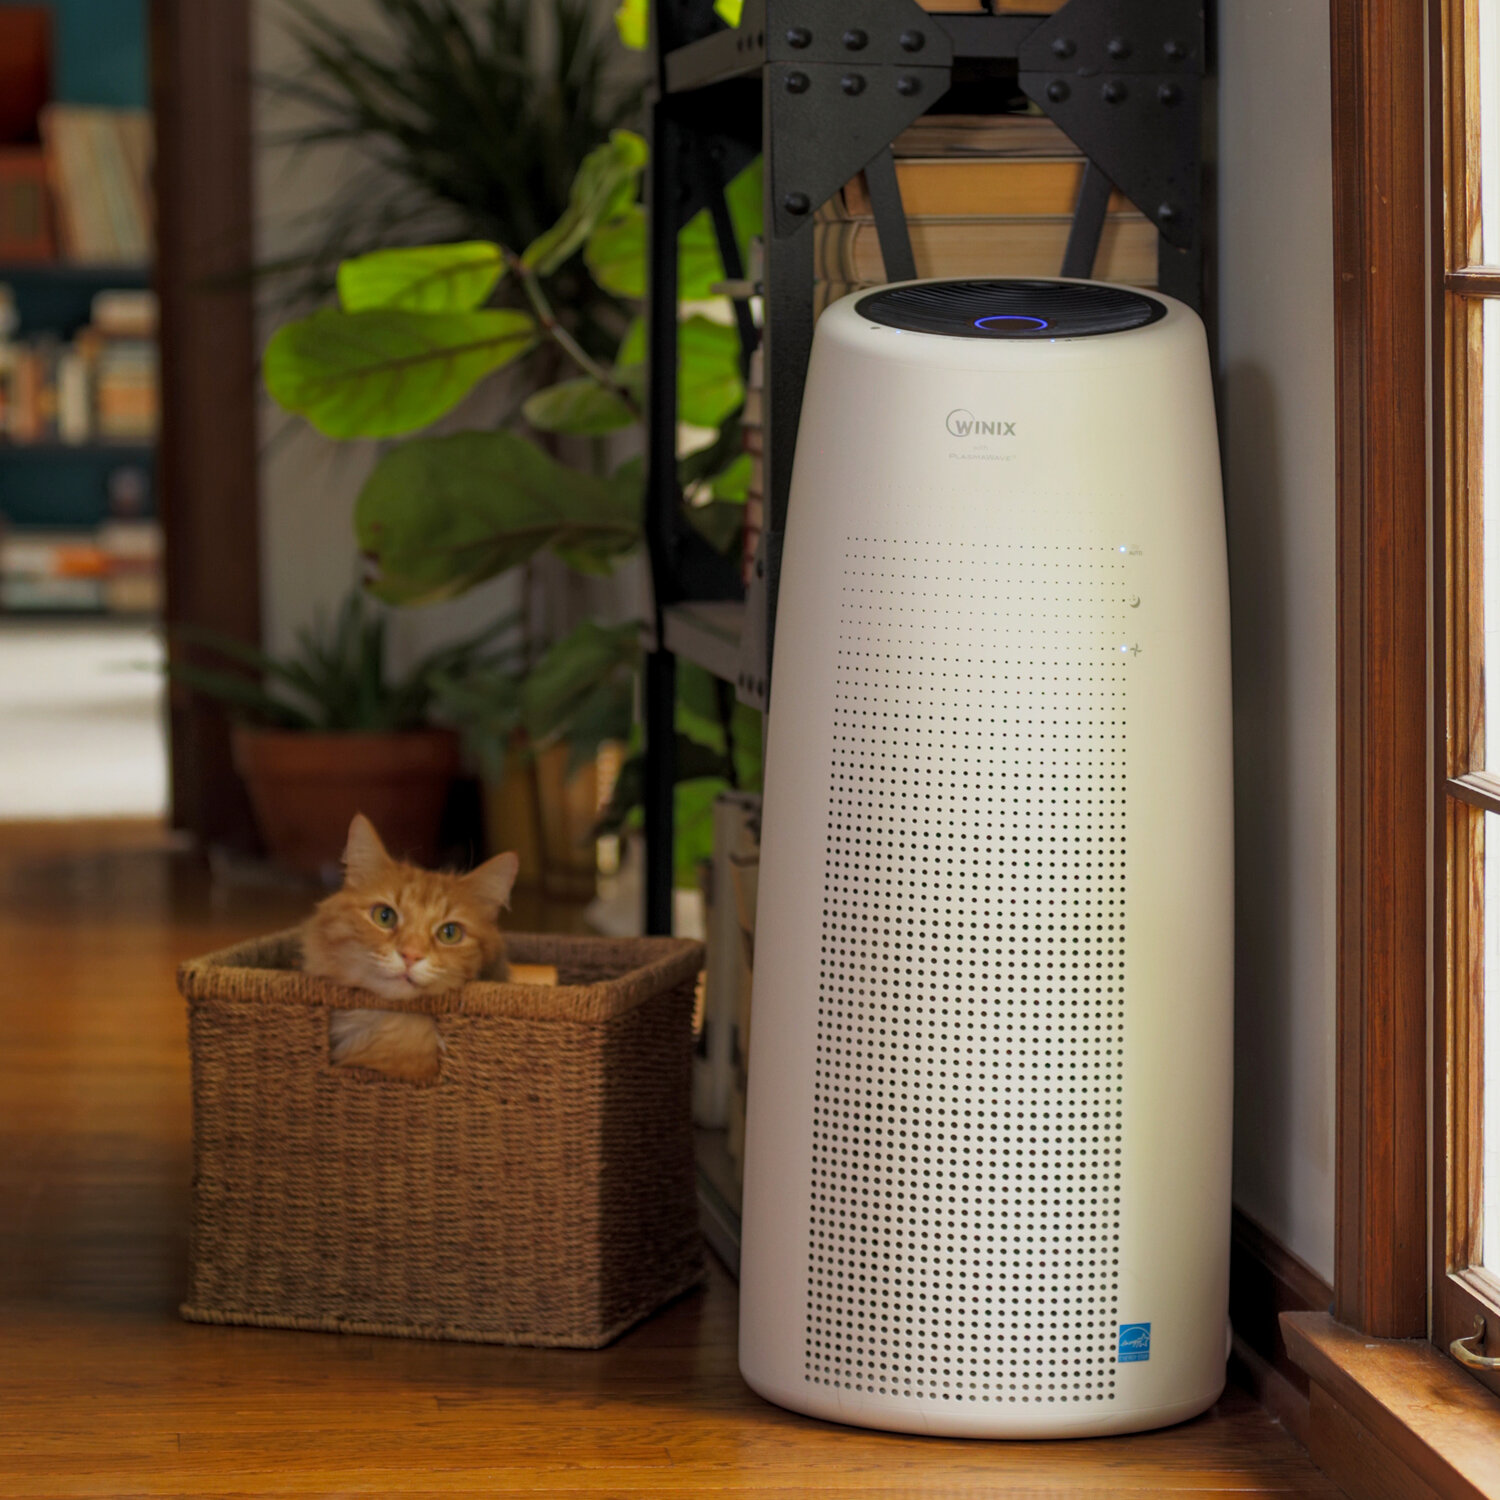 Winix Winix Nk100 True Hepa Air Purifier 8809154399297 Ebay